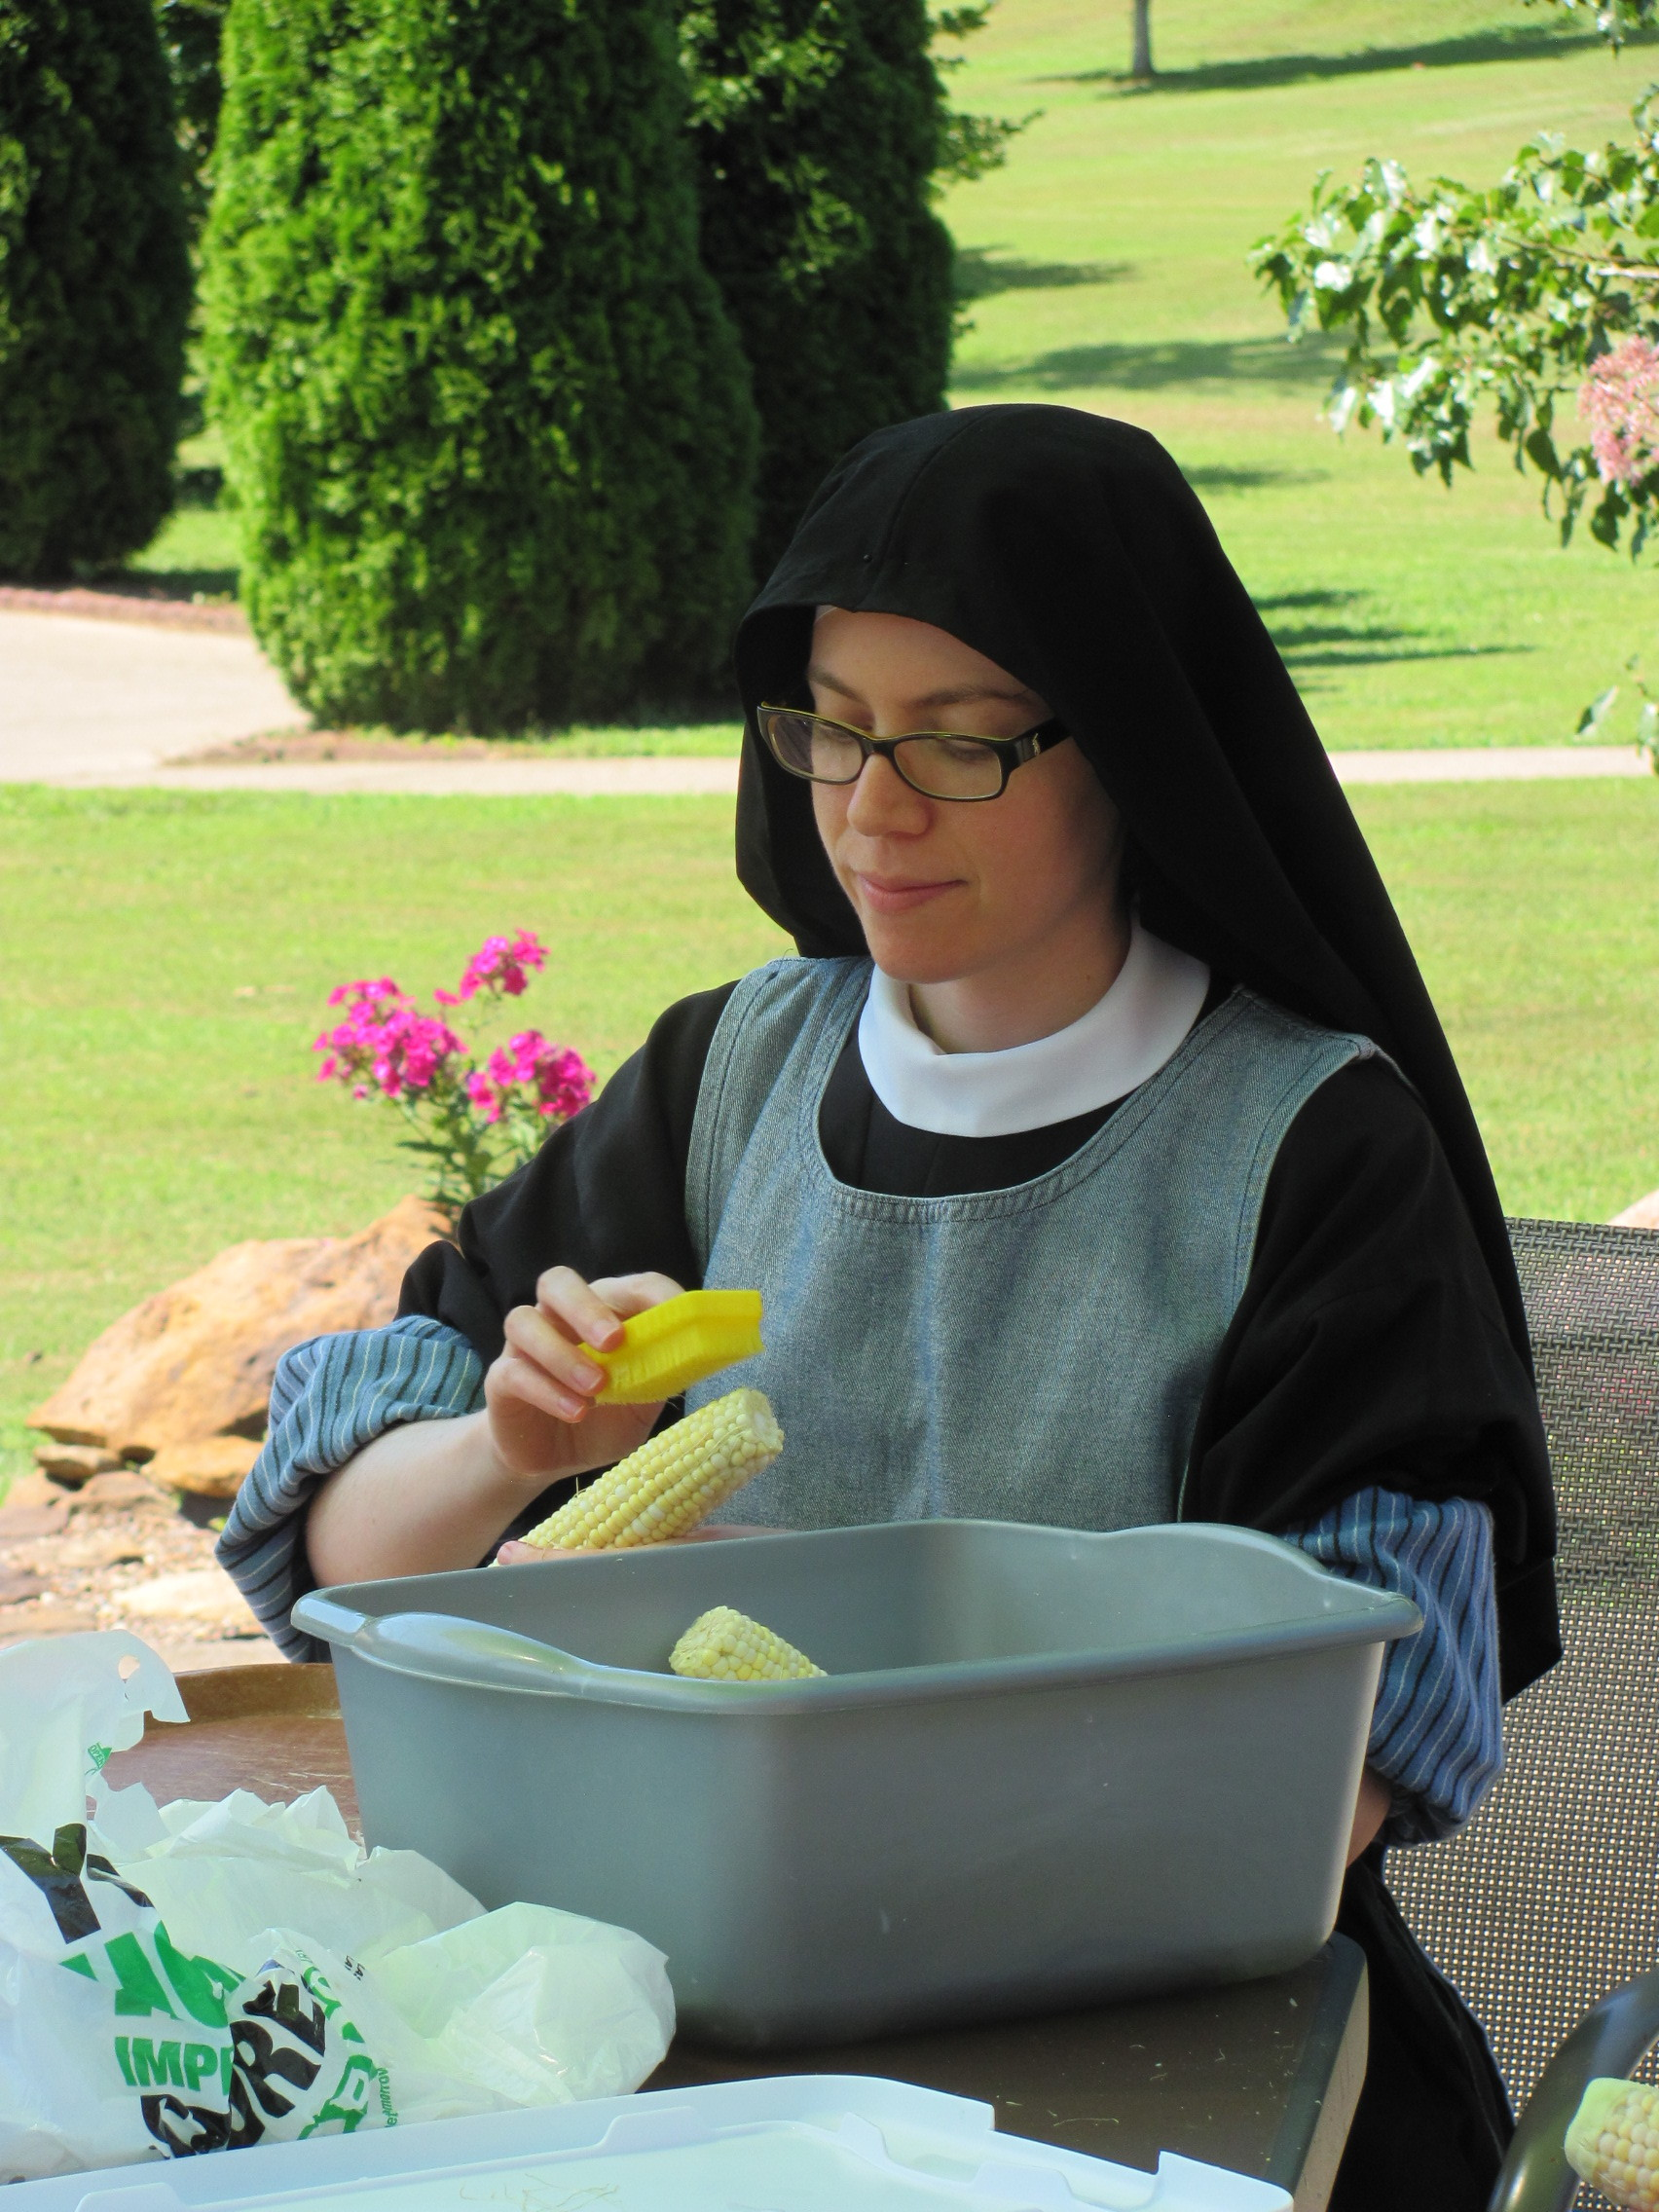 Sr. Maria Faustina enjoying the cool morning in the courtyard.